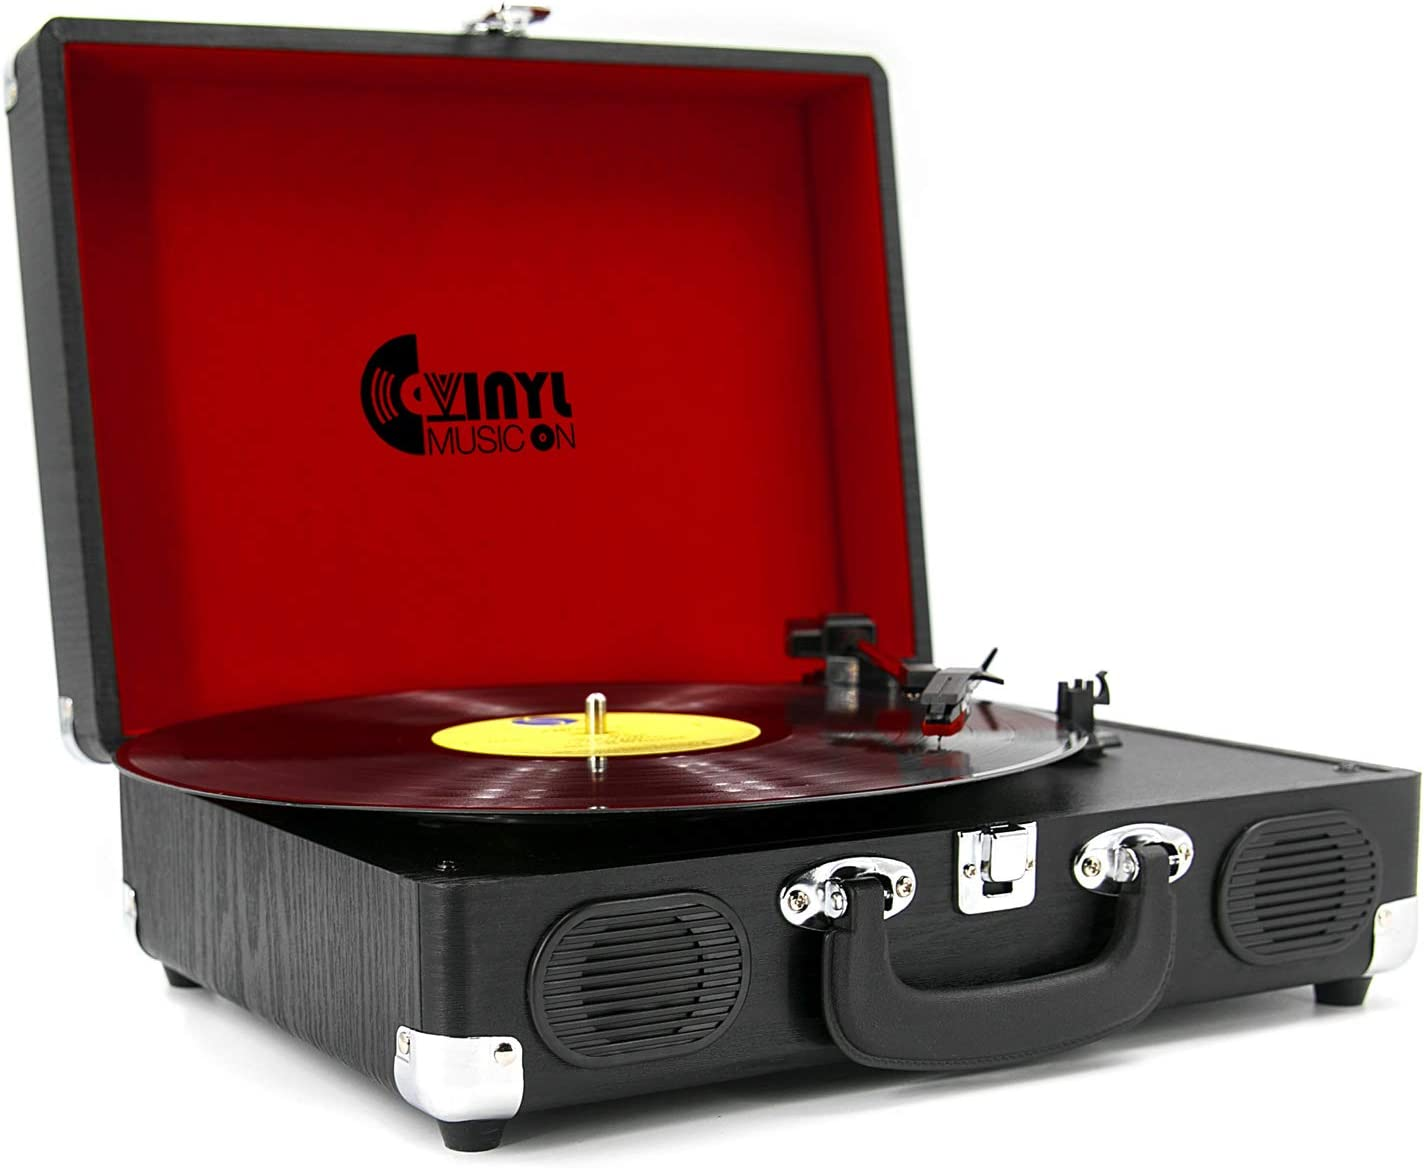 VMO Retro Style Record Player with Built-in Speakers, Classic Wooden Suitcase Turntable for 33,45,78 RPM Vinyl Records(Black Wood)